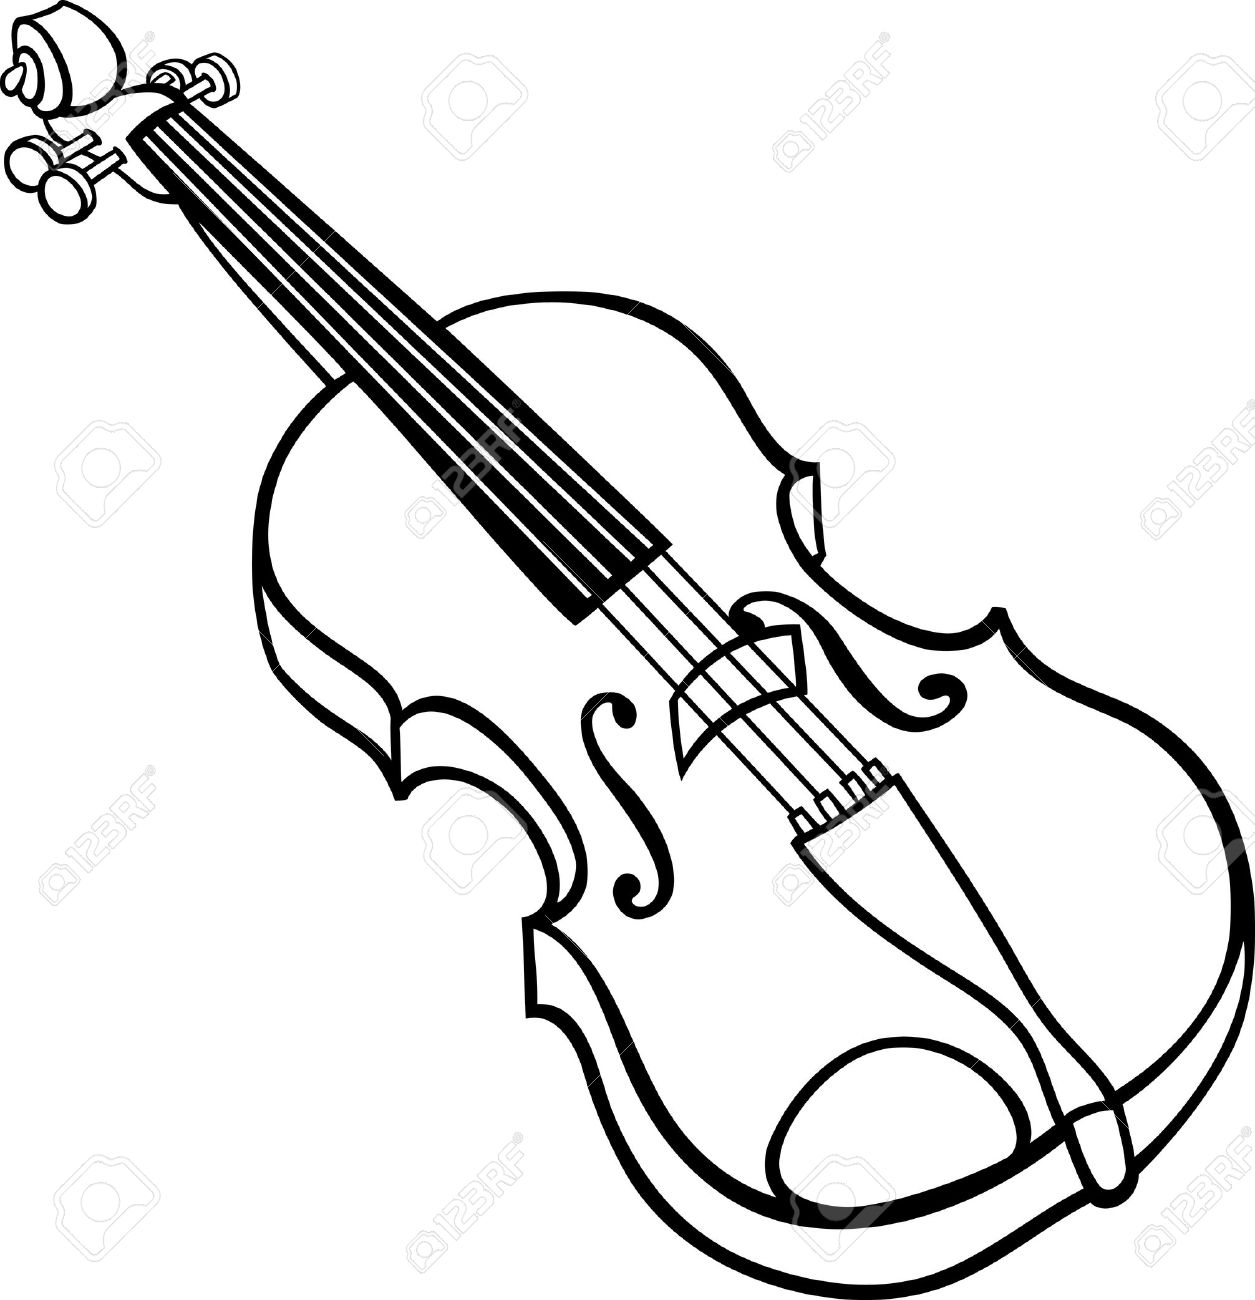 black and white cartoon illustration of violin musical instrument rh 123rf com instrumental clip art clipart instrument de mesure